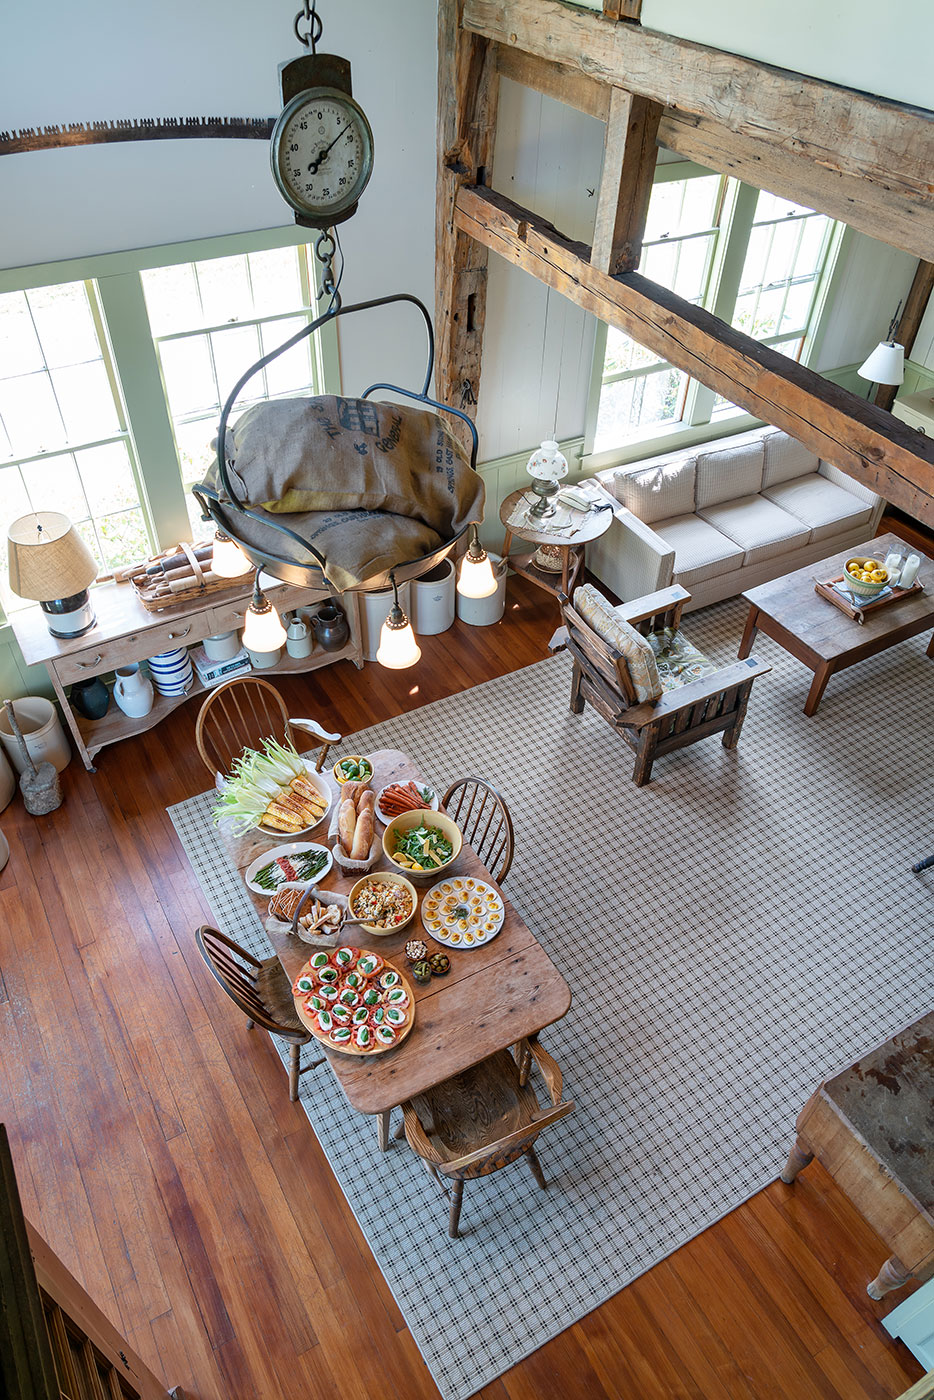 New uses for antiques by interior Designer Michael Carter of Carter & Company